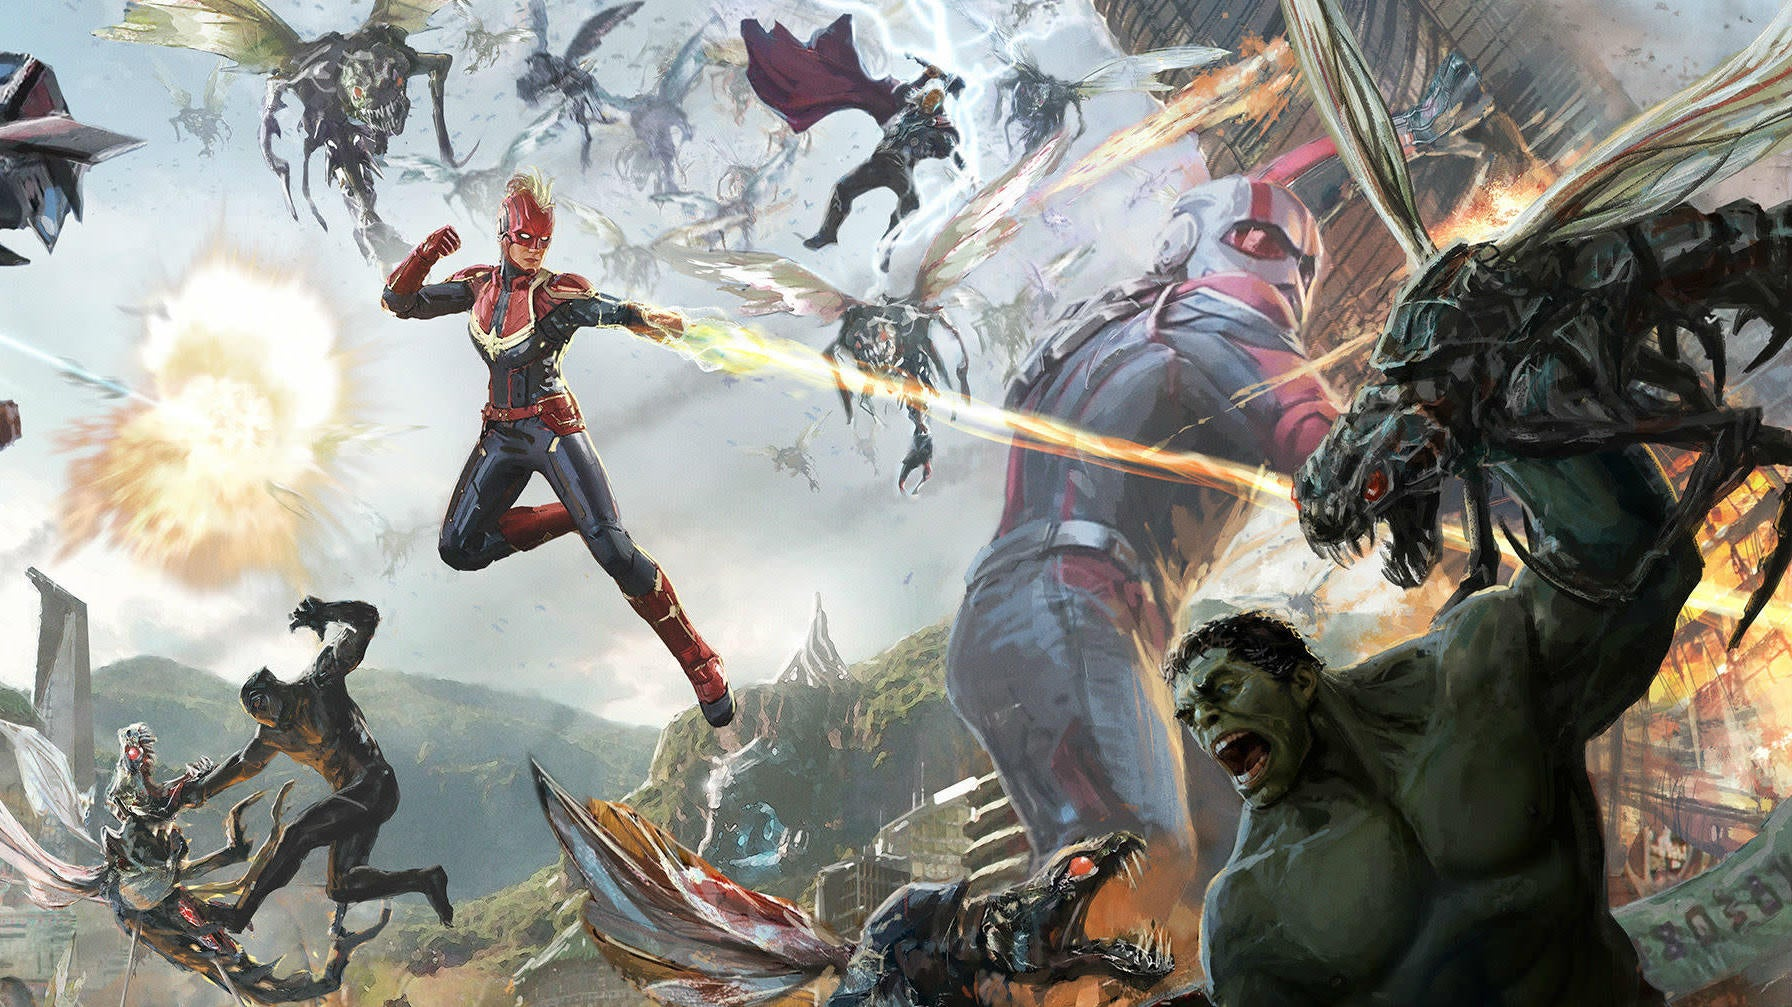 Avengers, Spider-Man And More Marvel Attractions Coming To Disney Parks In The Near Future